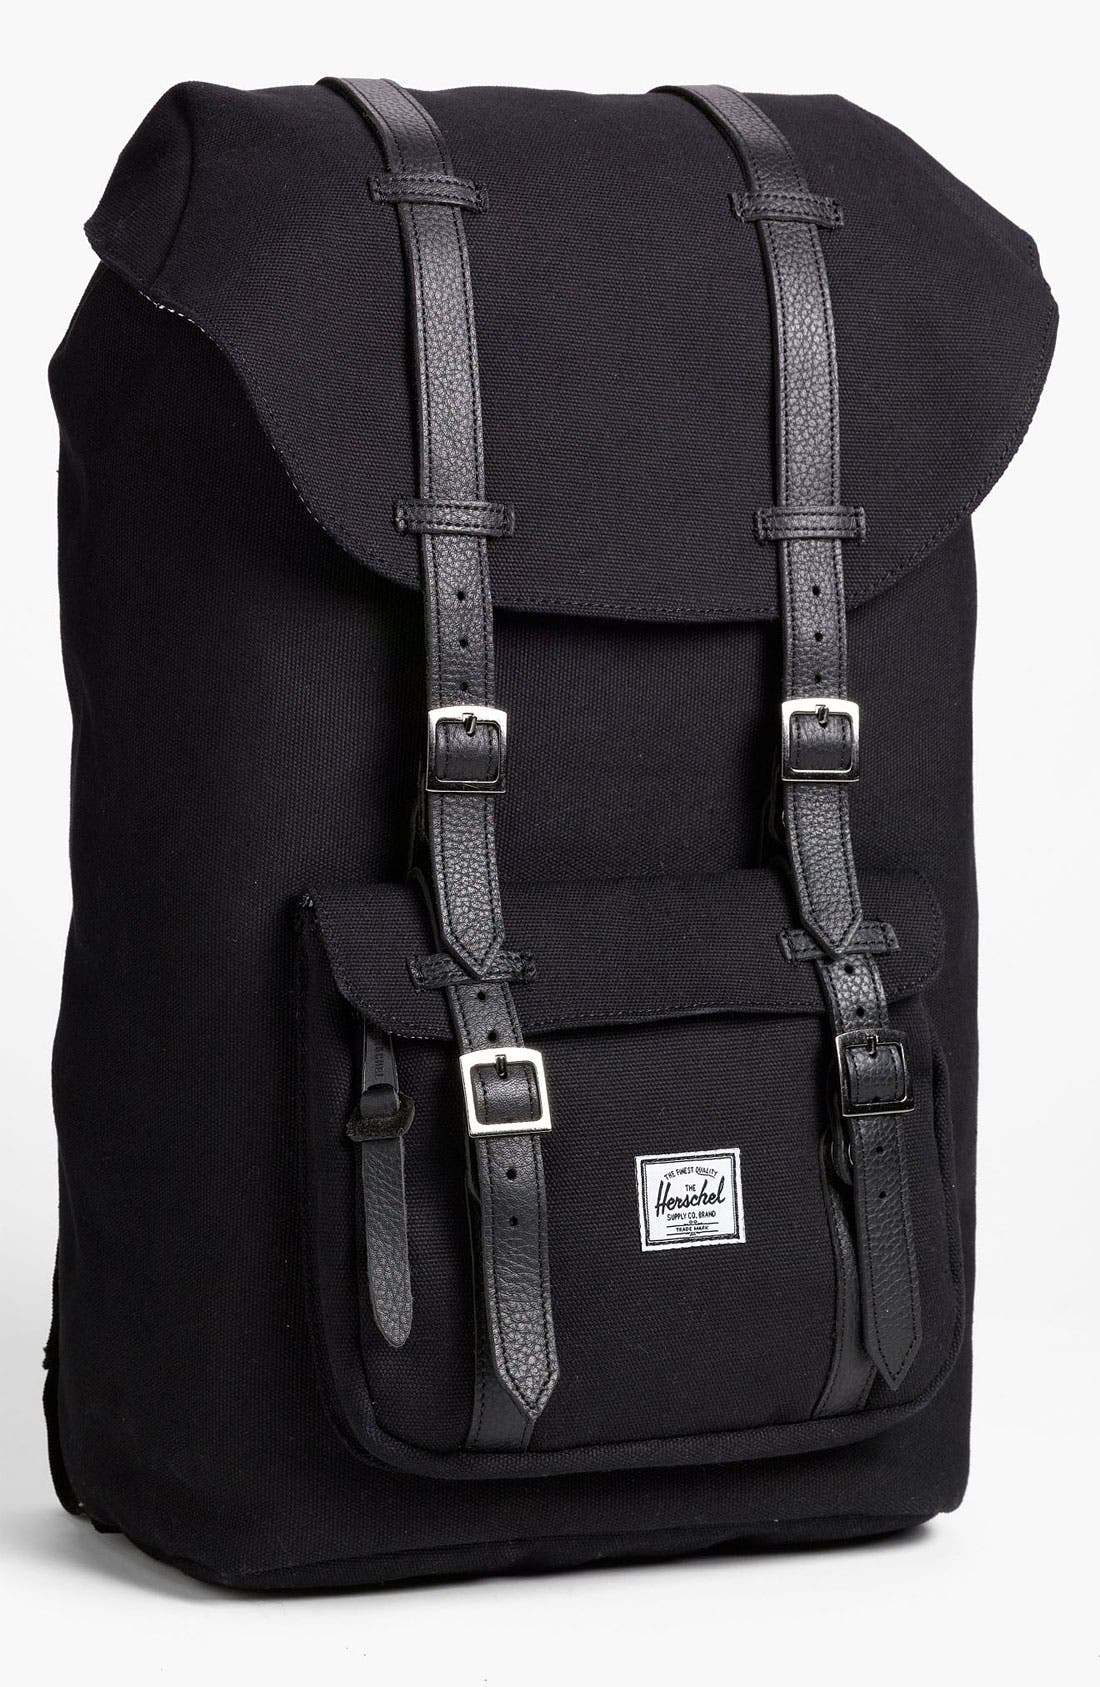 Alternate Image 1 Selected - Herschel Supply Co. 'Little American 20' Canvas Backpack